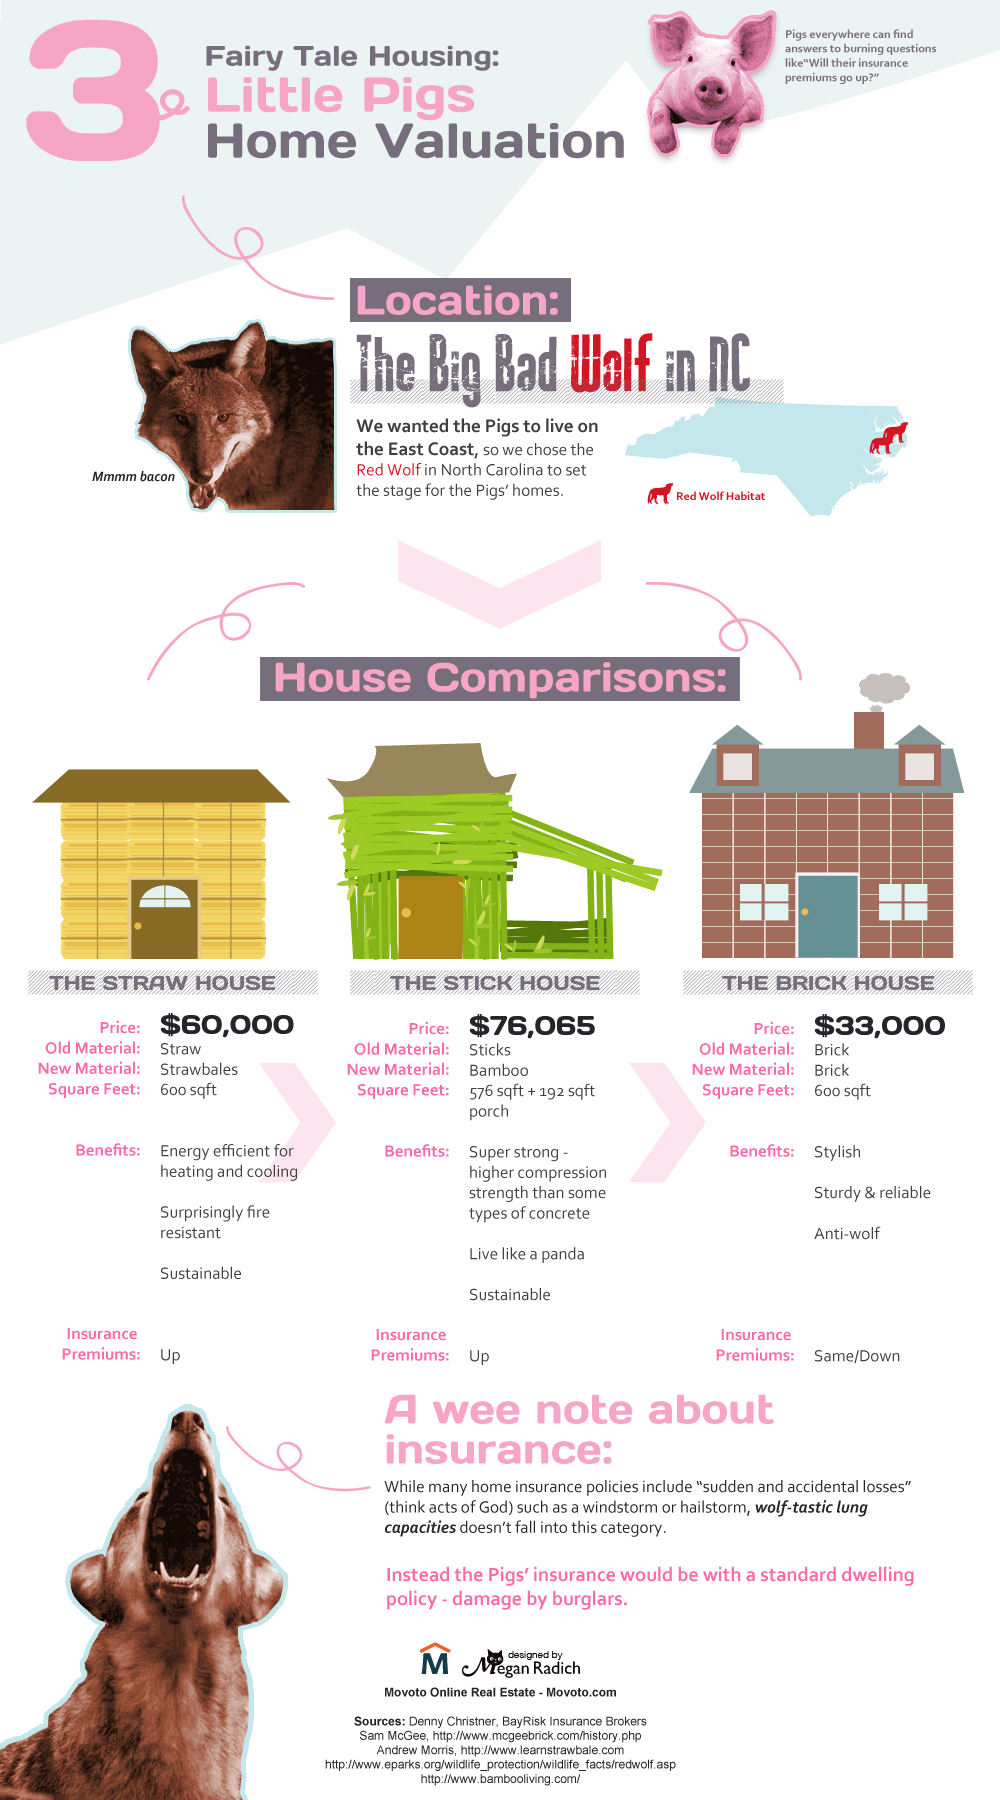 3littlepigs-infographic-4a.png